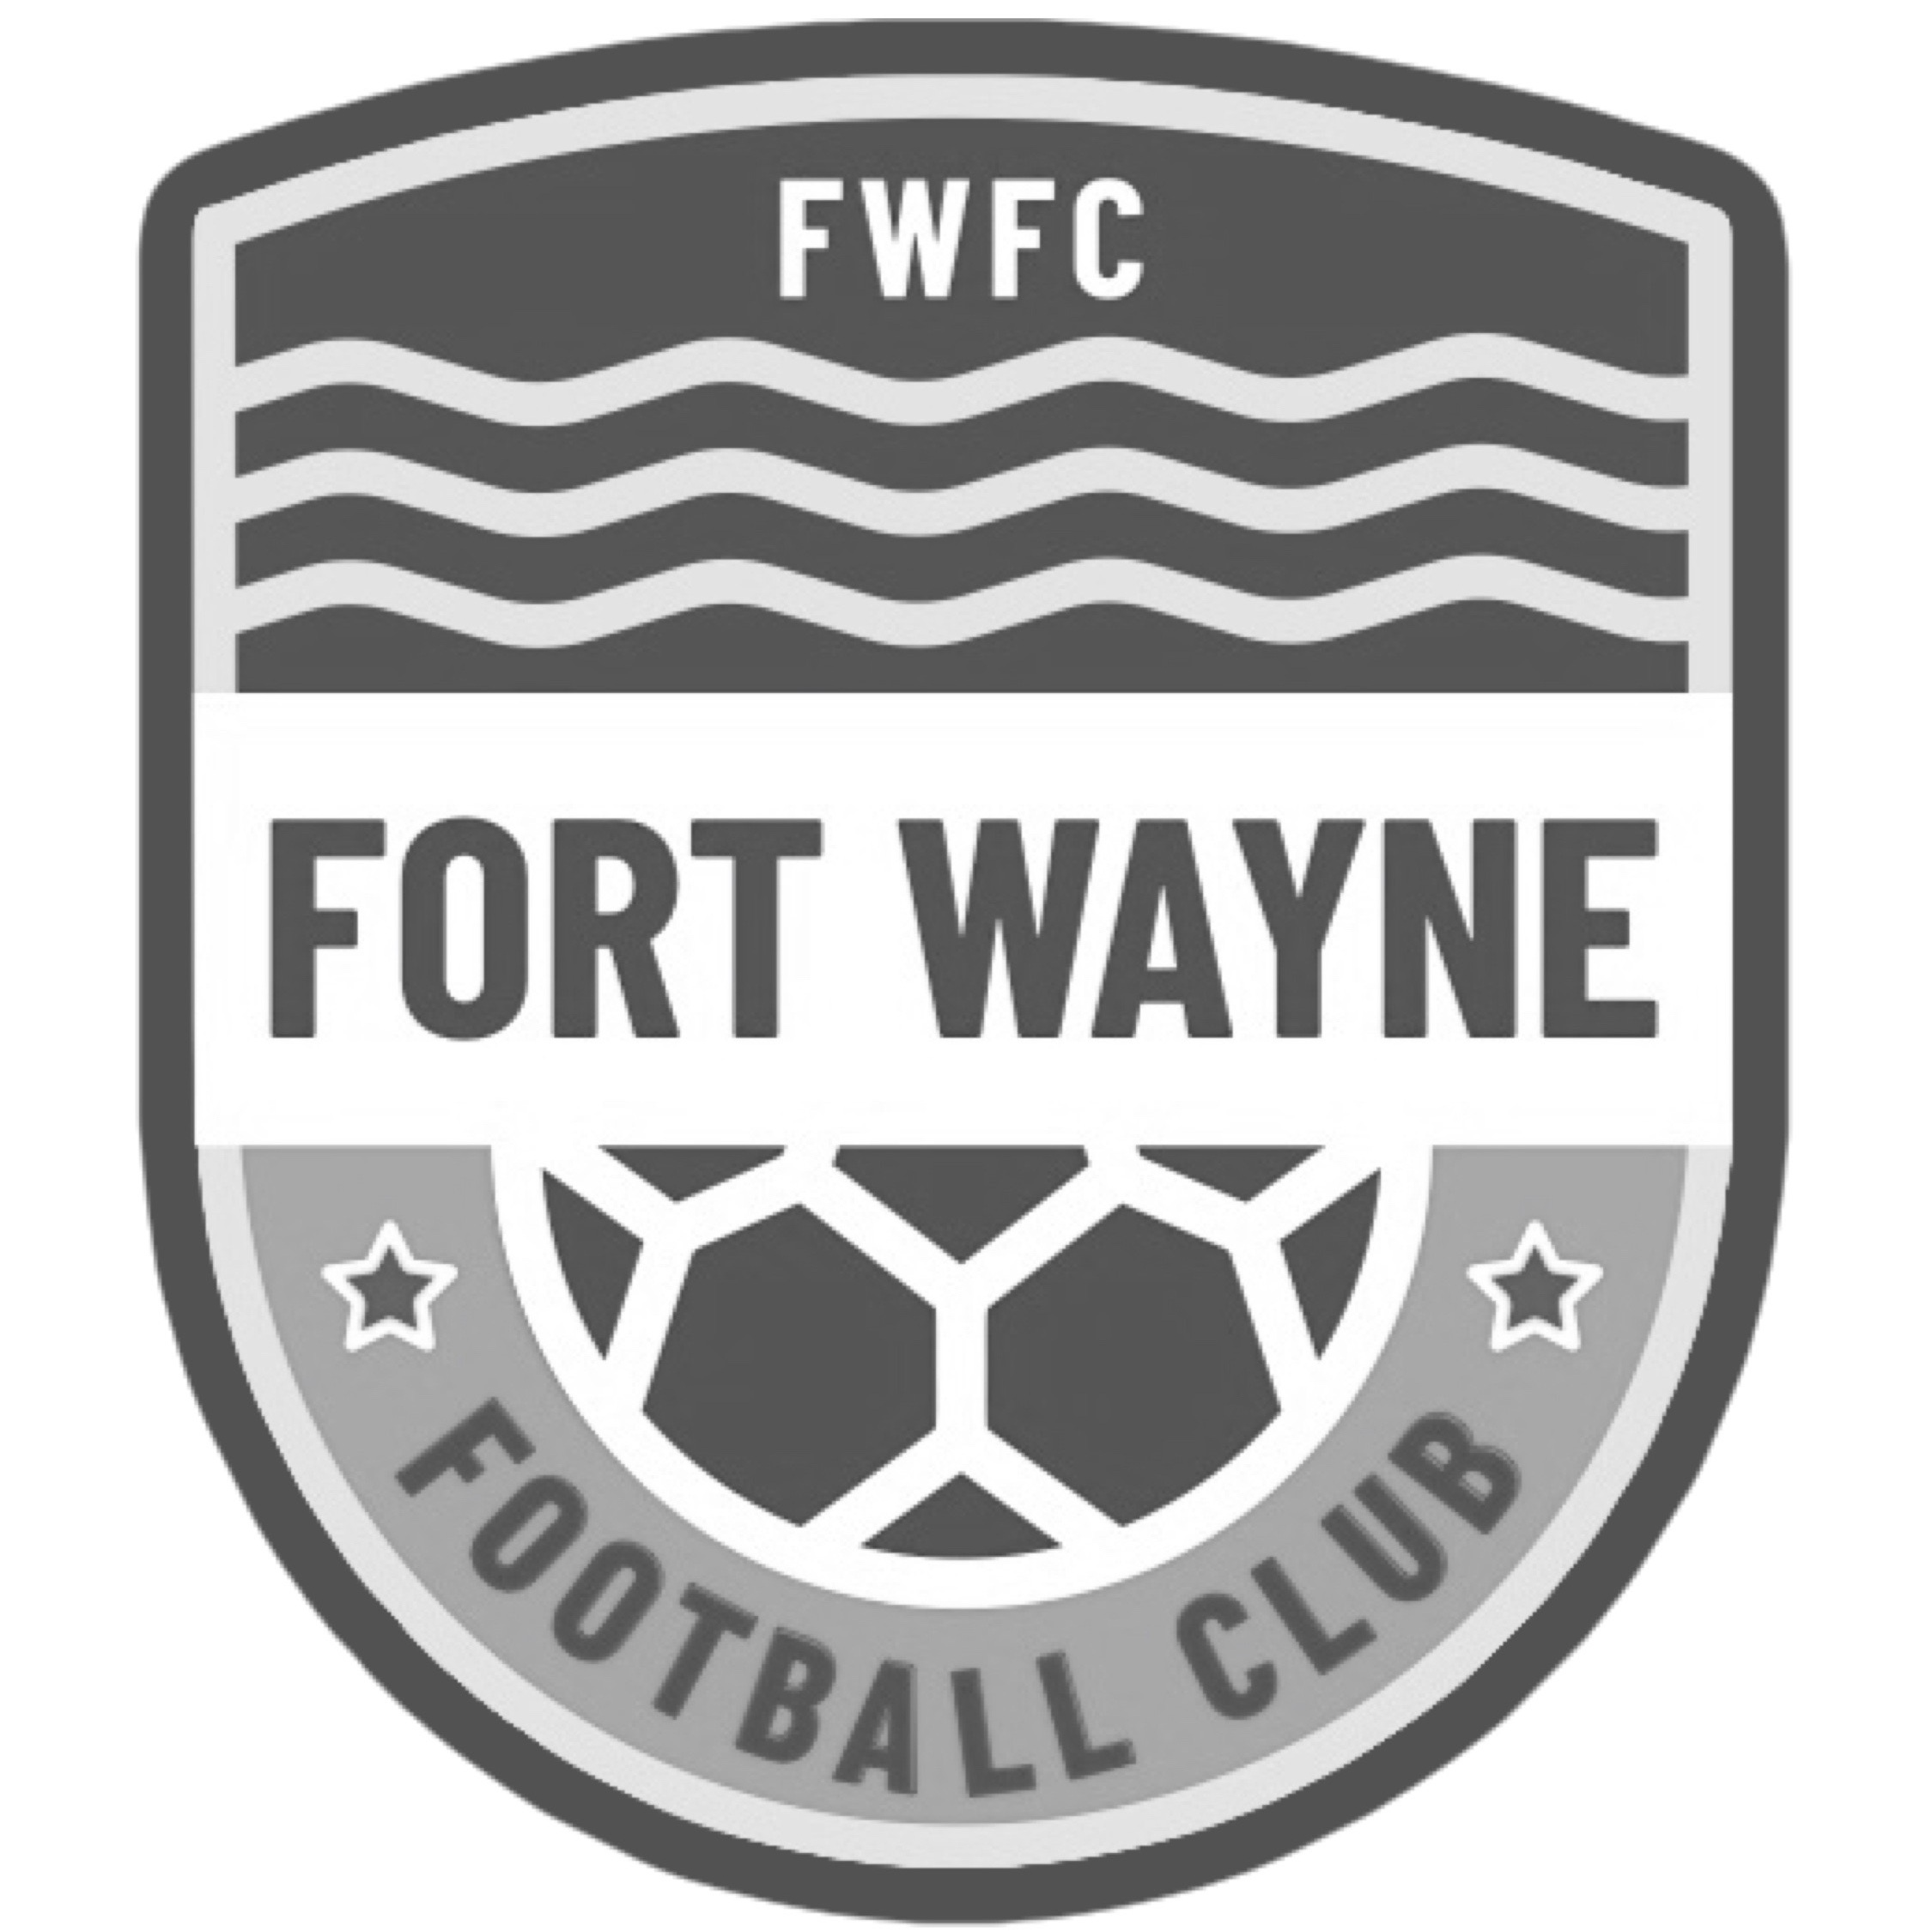 TBD - Fan Club ManagerCoordinates social activities for Fort Wayne FC's Fan Club. Coordinates Fort Wayne FC drummers.